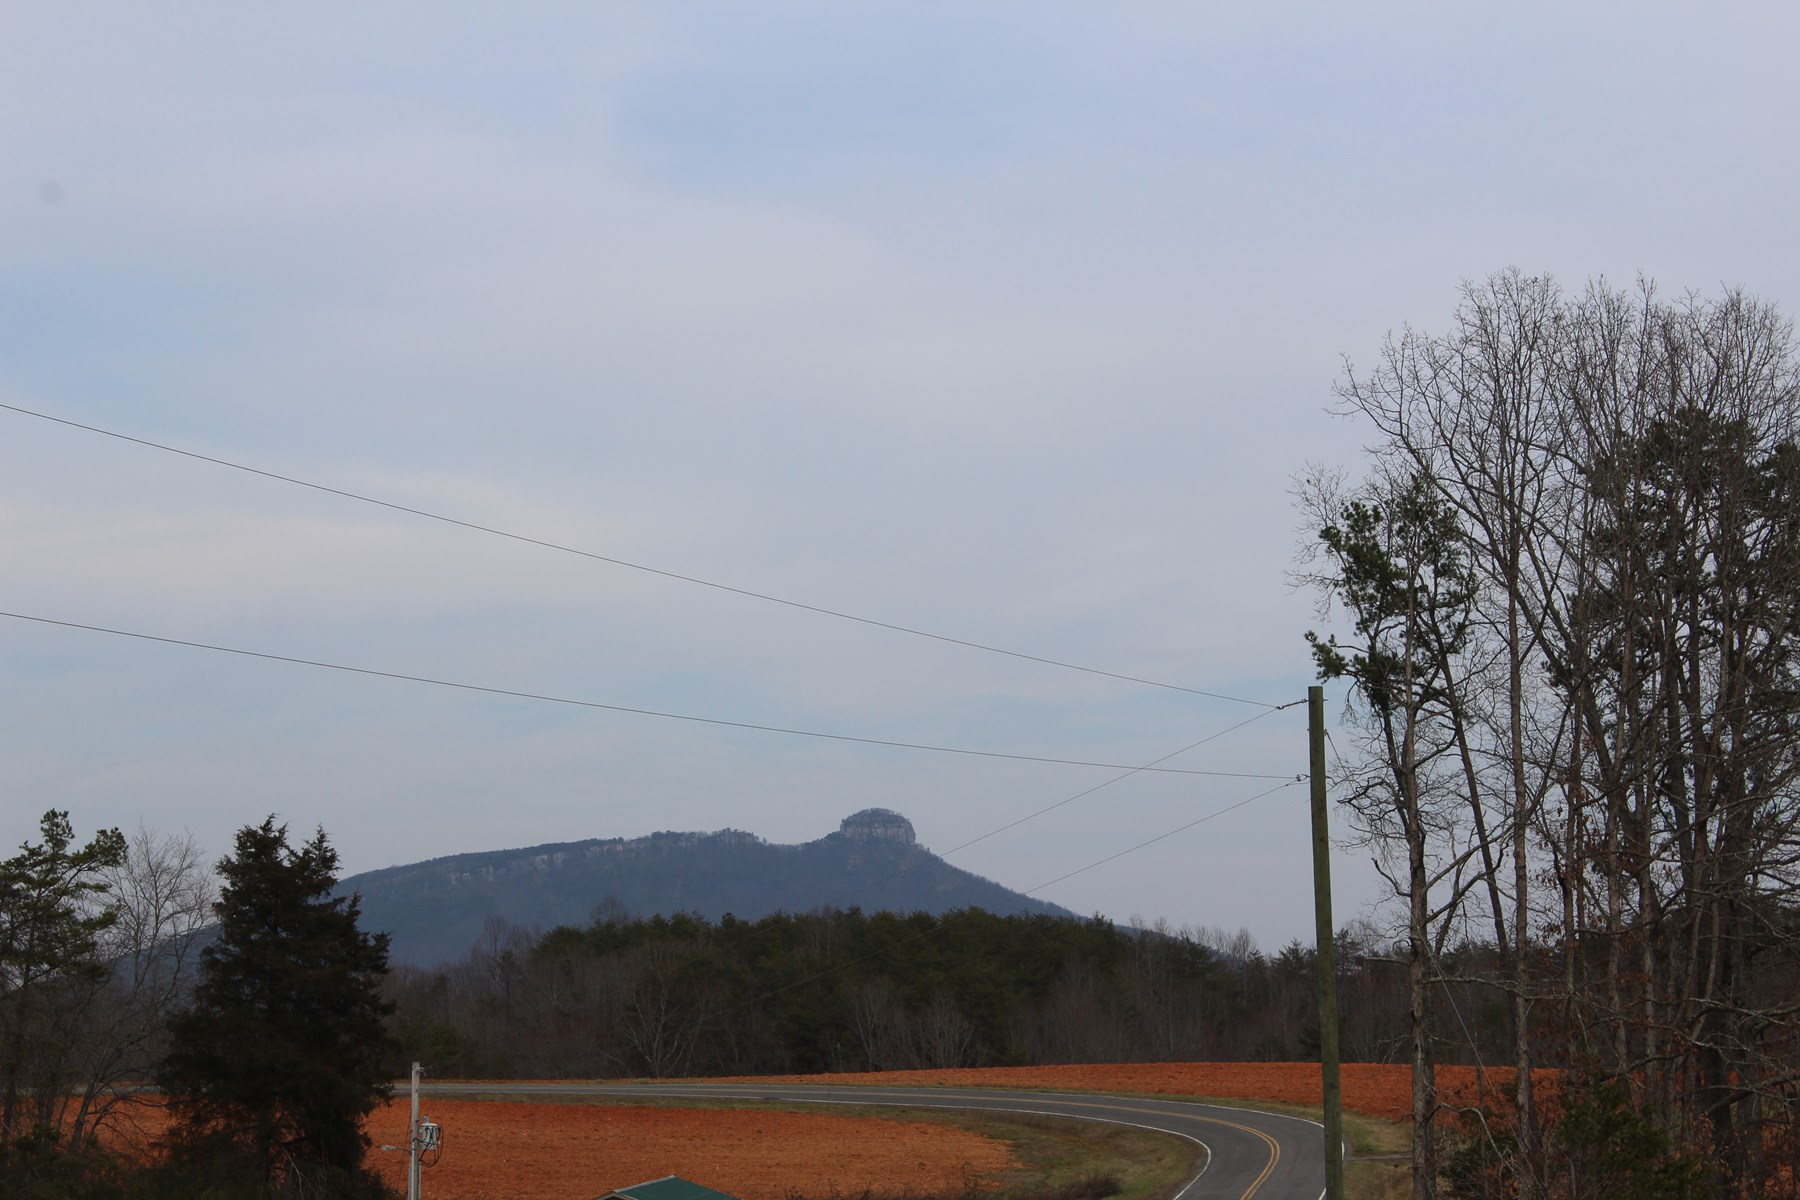 Land for sale in Pinnacle, NC - Vacant Land with Mt Views